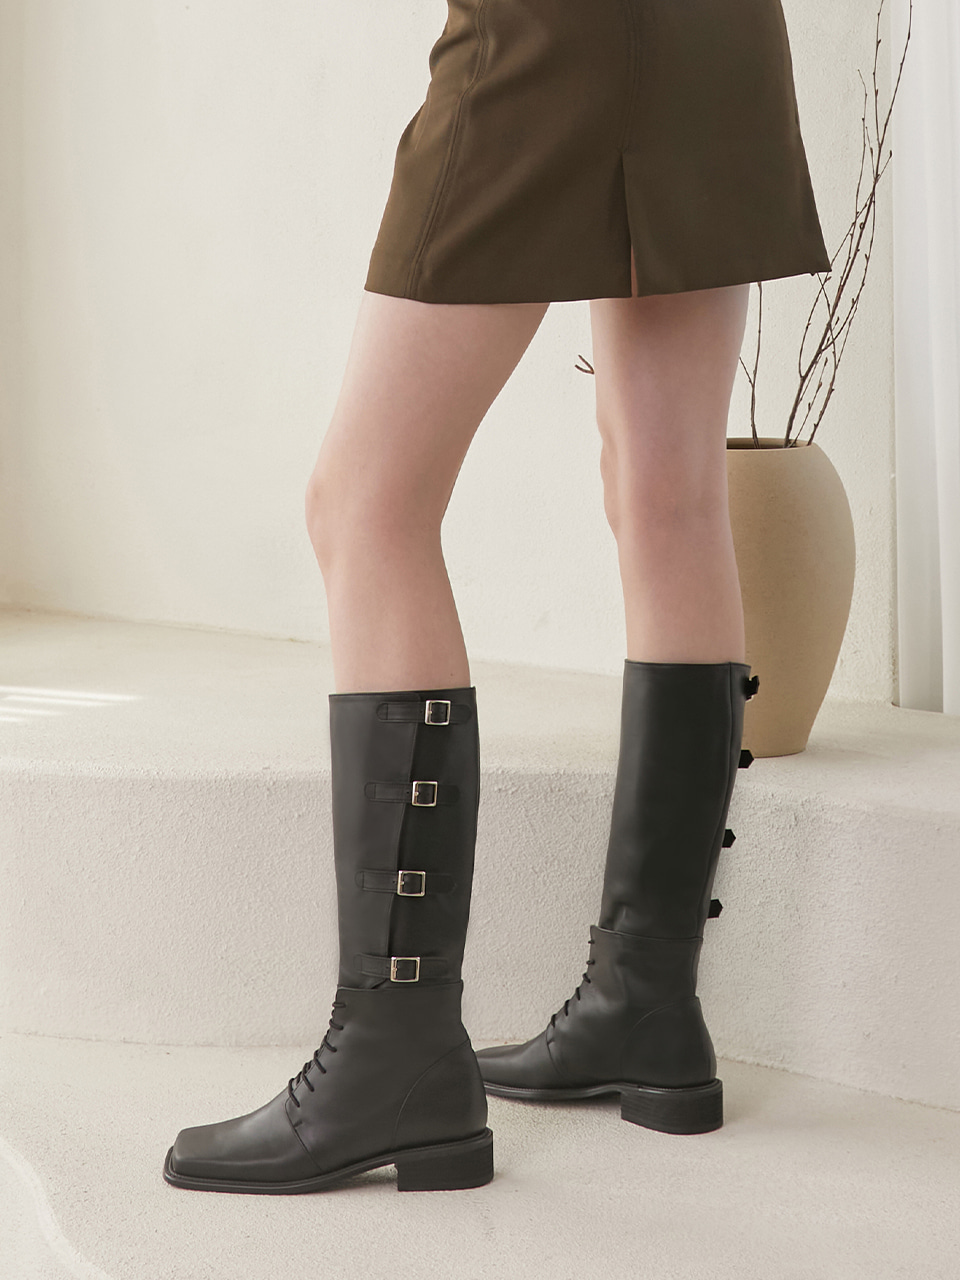 BESS LONG BOOTS(Black)